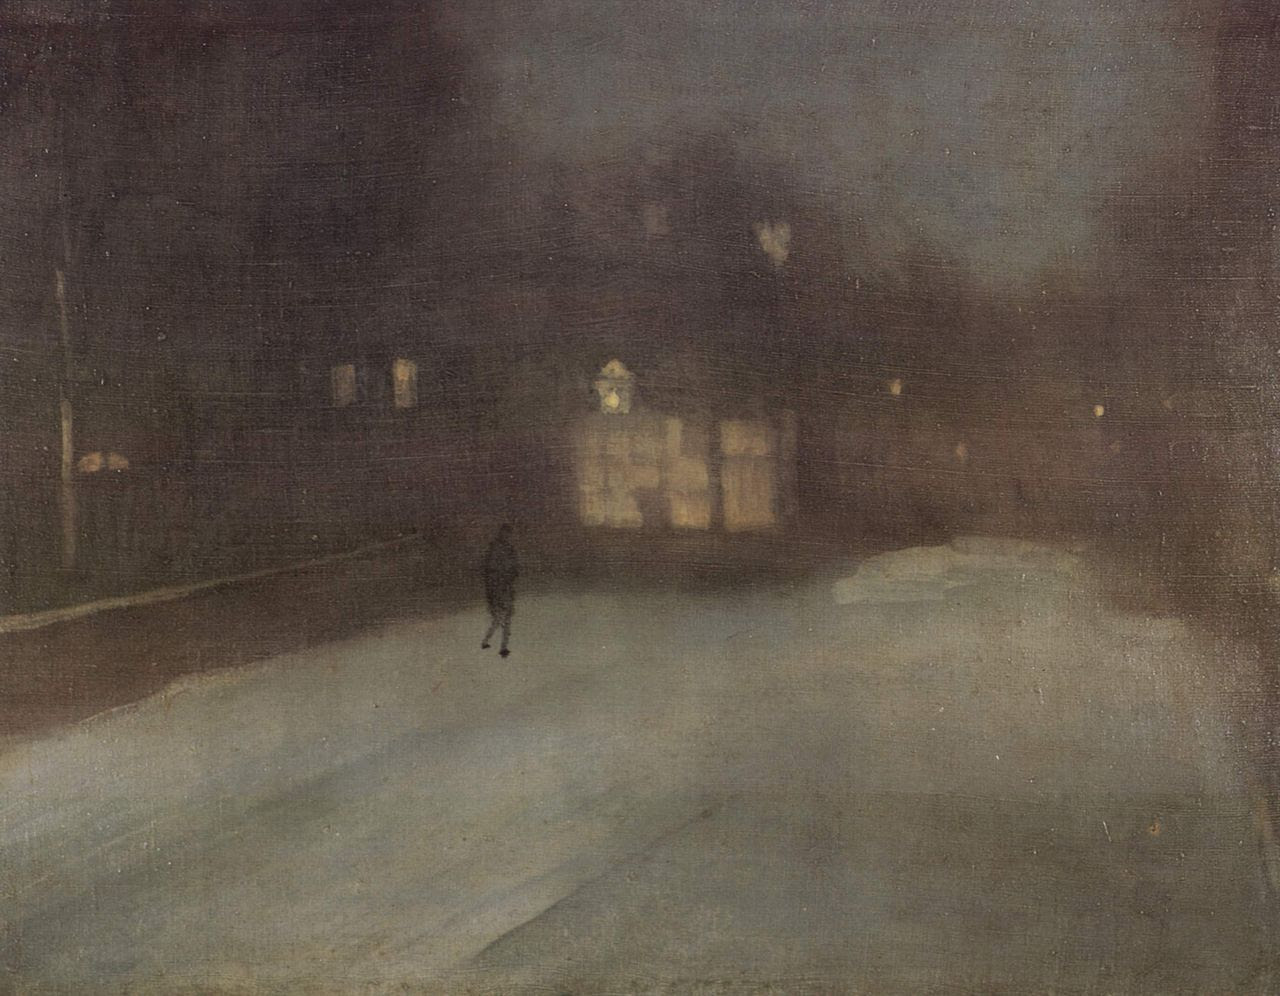 http://upload.wikimedia.org/wikipedia/commons/thumb/b/ba/James_Abbot_McNeill_Whistler_009.jpg/1280px-James_Abbot_McNeill_Whistler_009.jpg